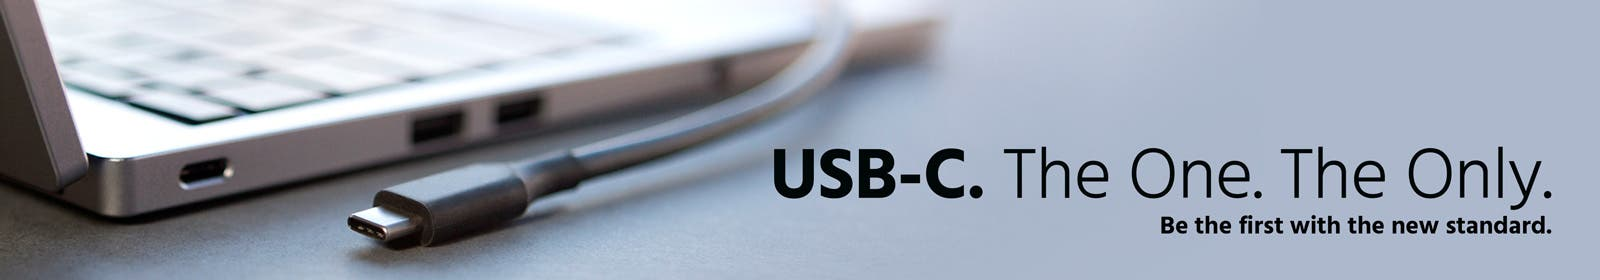 USB-C. The One. The Only.